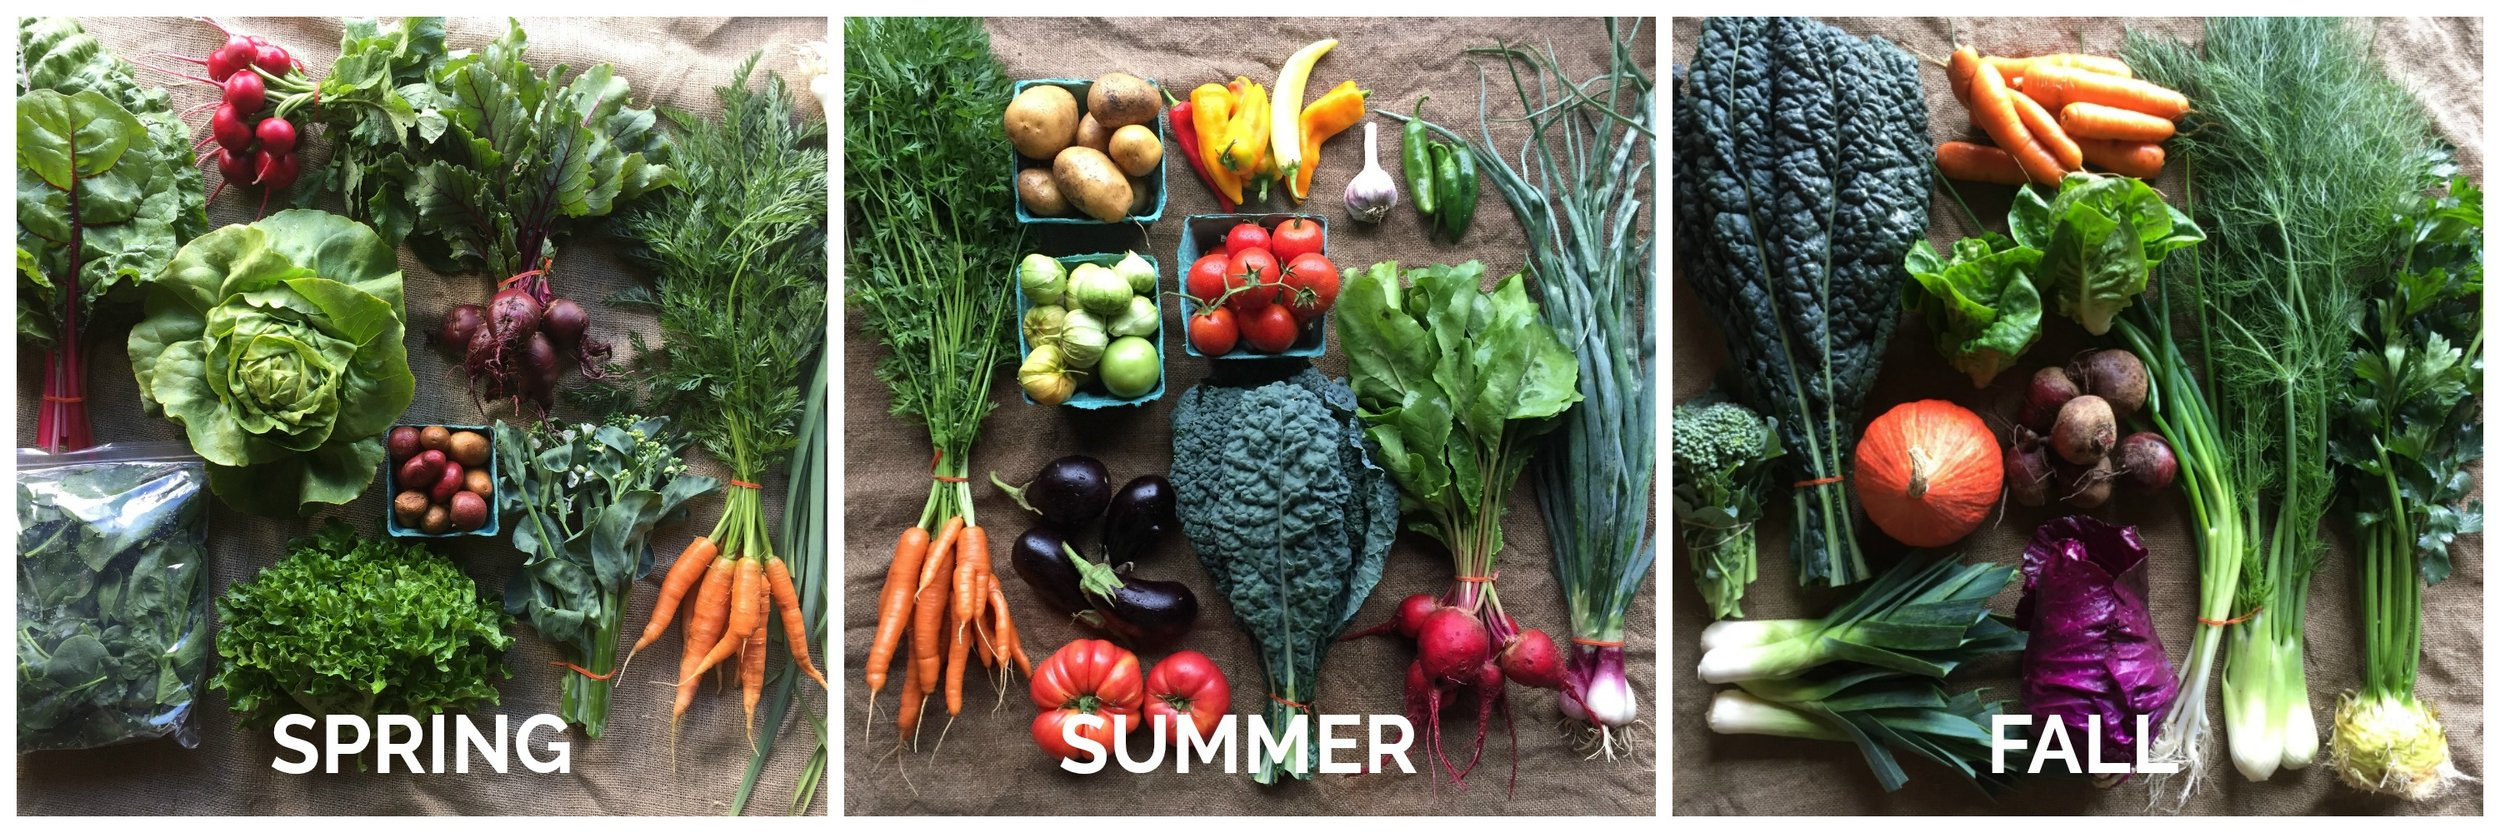 NOTE: these images are not representative of share size.  They do show you what kinds of veggies you are likely to see in your shares across the seasons!